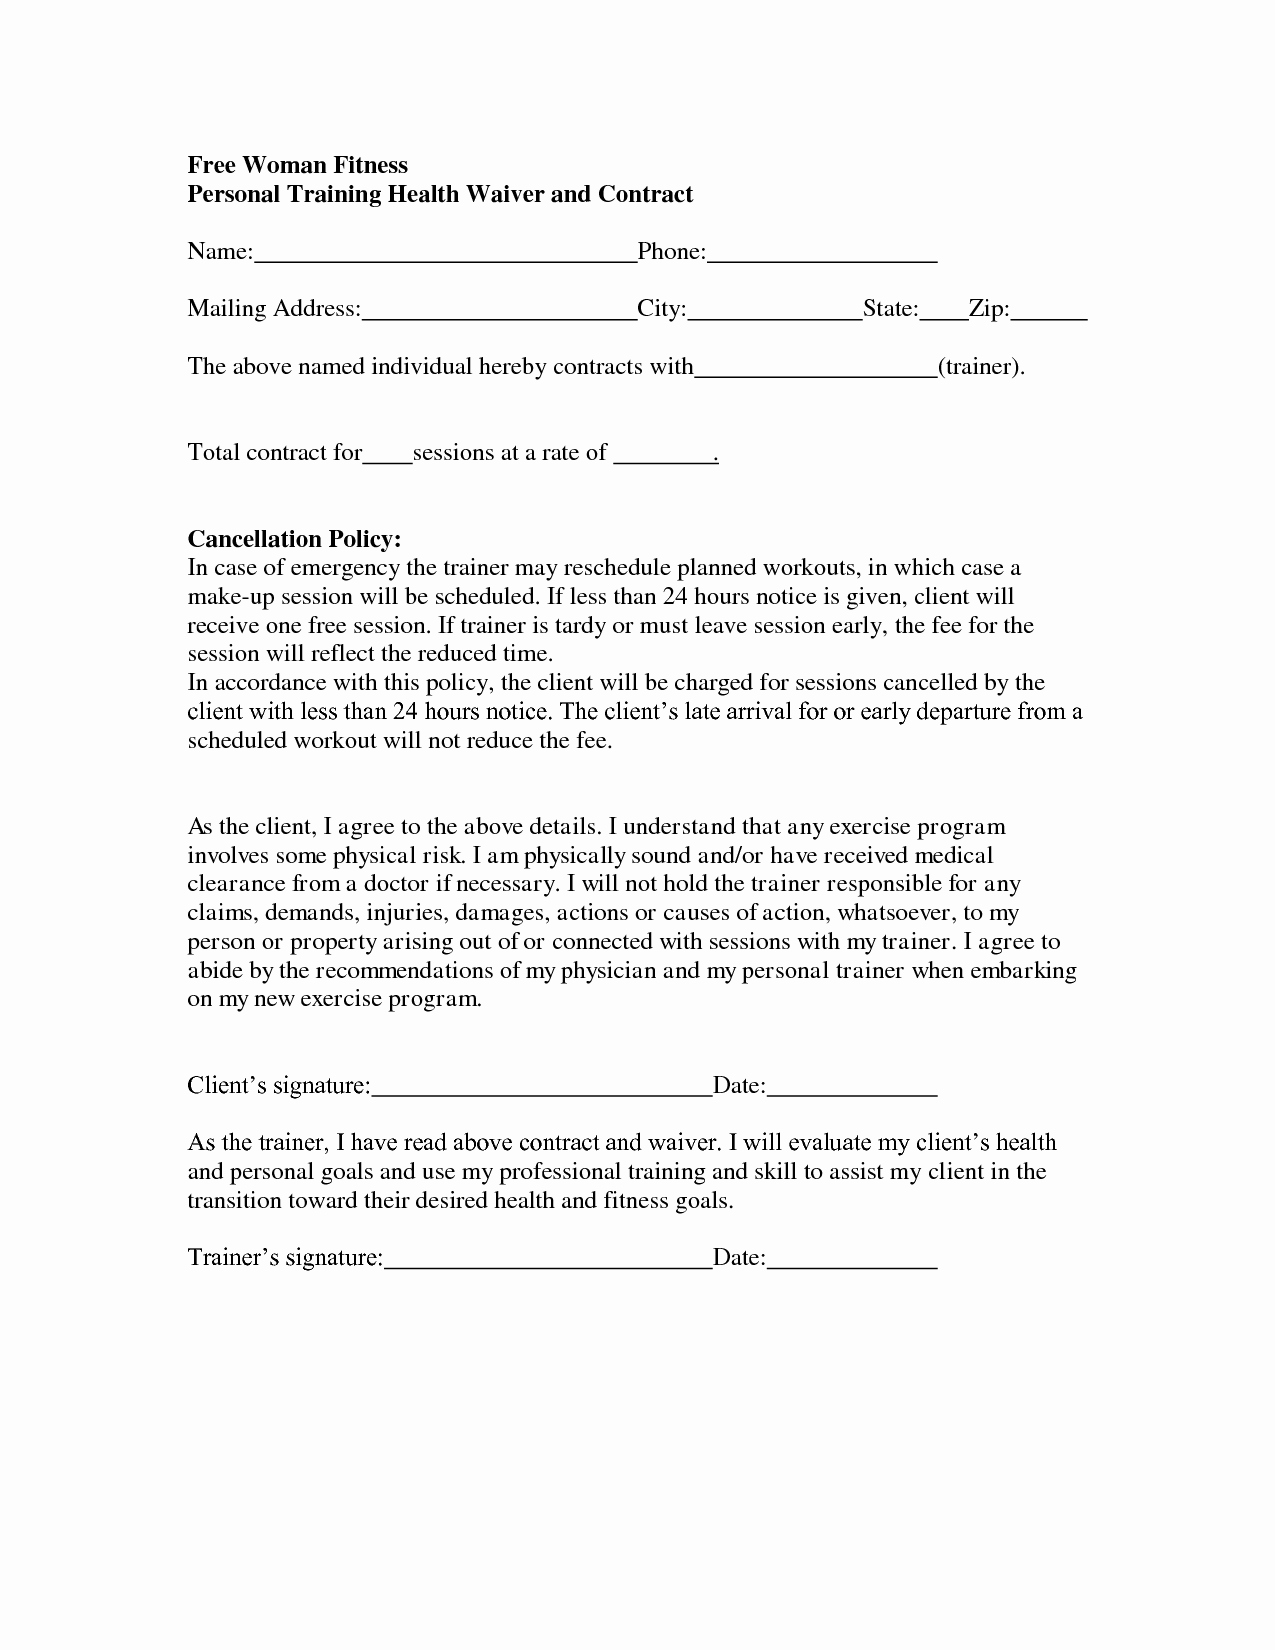 Personal Trainer Contract Free Printable Documents